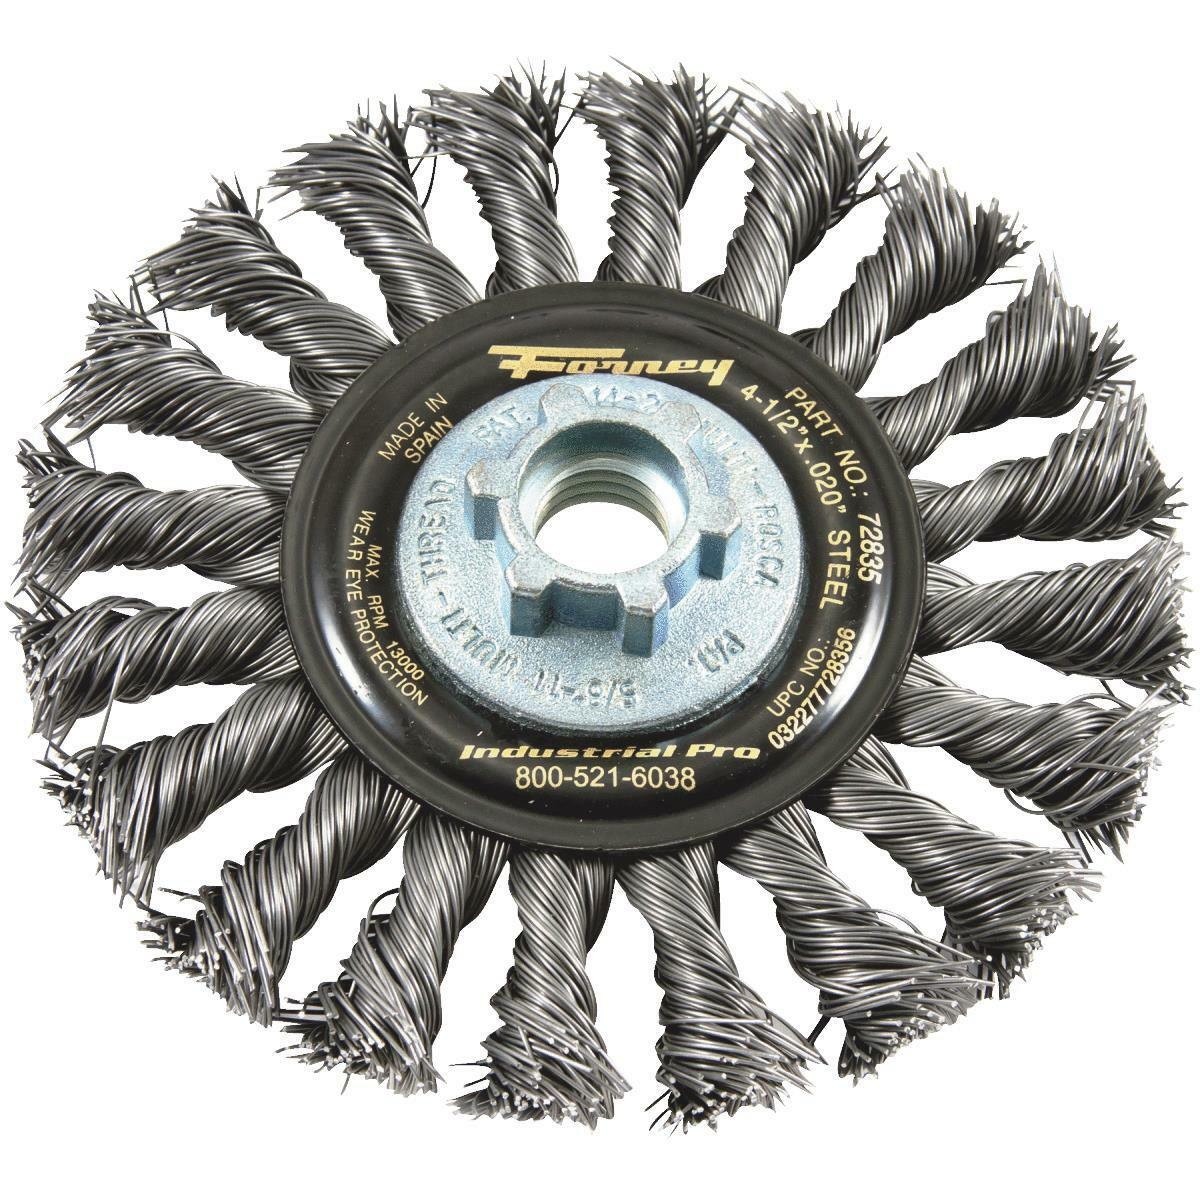 Forney Industrial Pro Twist Knot Angle Grinder Wire Wheel - Walmart ...